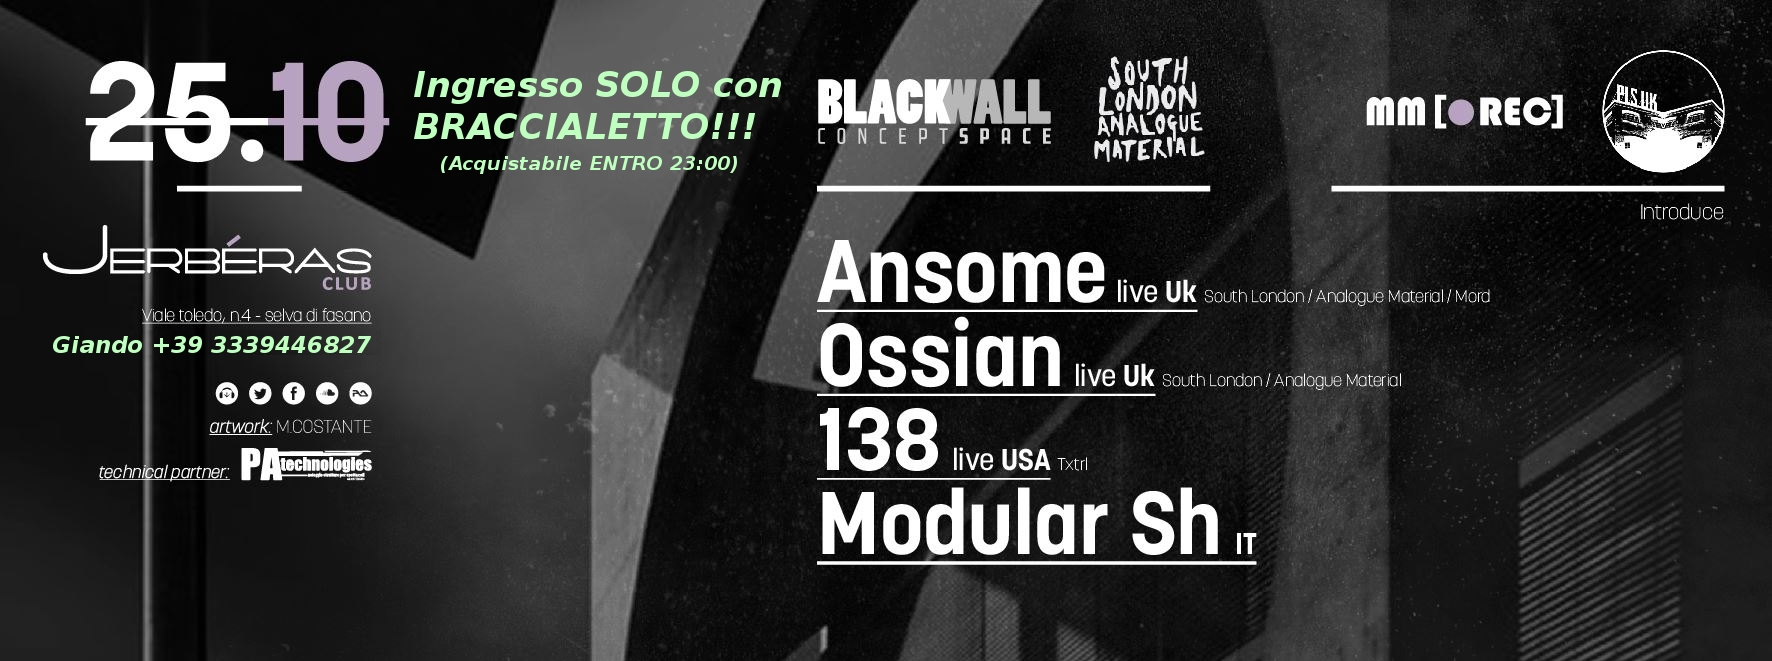 Sab 25/10 South London Analogue Material // BLACKWALL Concept Space @ Jerbéras Club